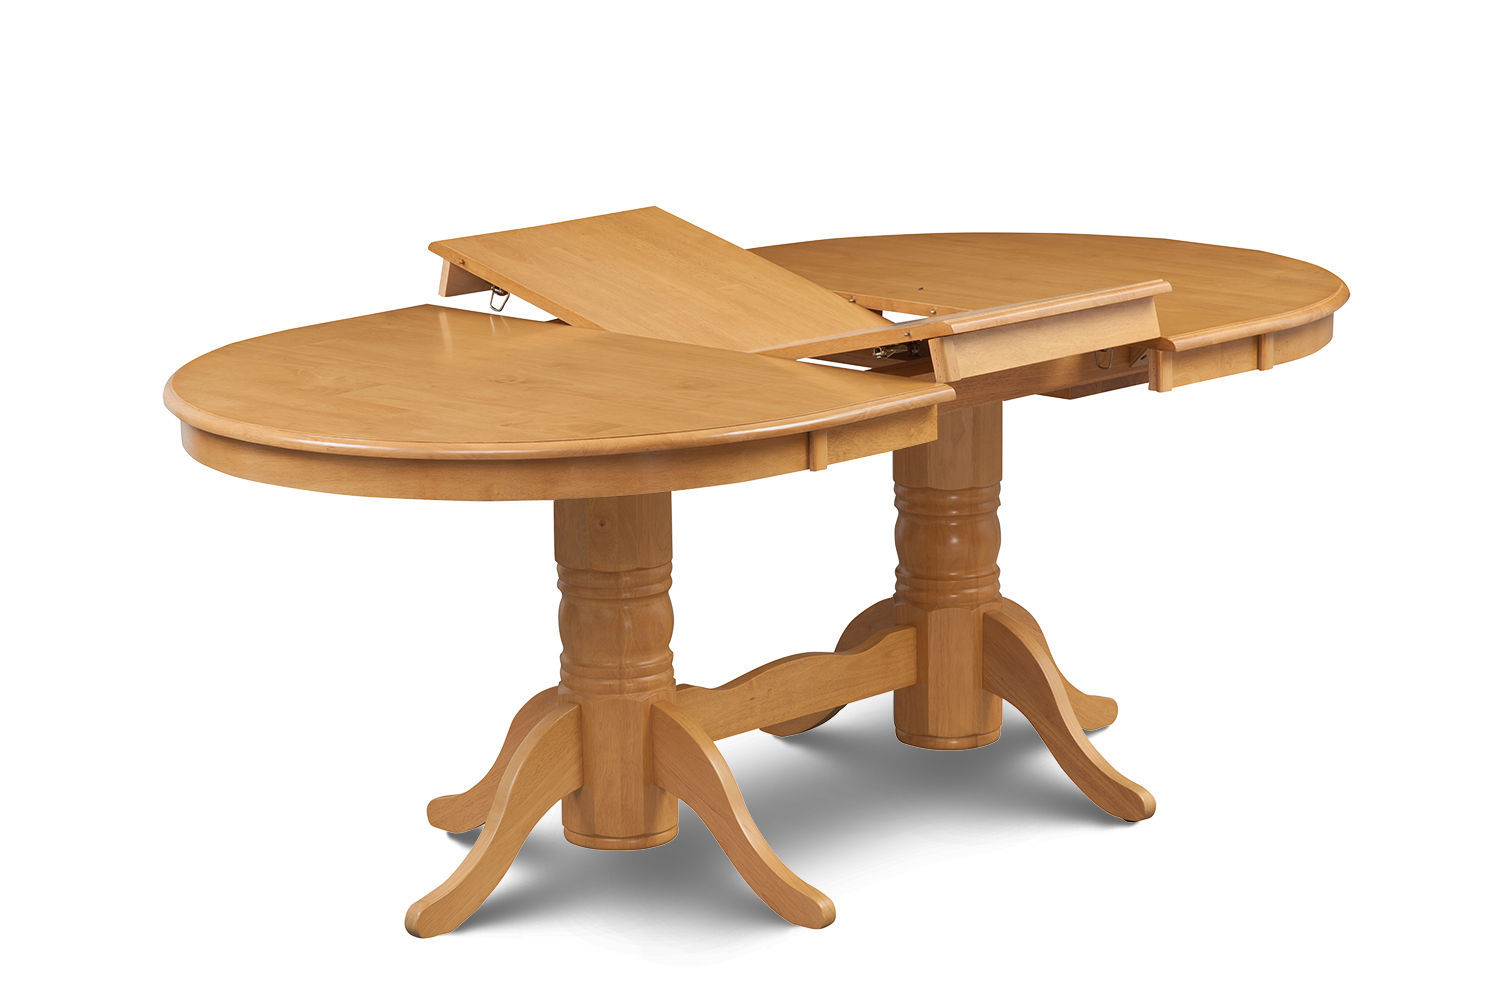 7 PIECE OVAL DINING ROOM TABLE SET w/ 6 WOODEN CHAIRS IN OAK FINISH